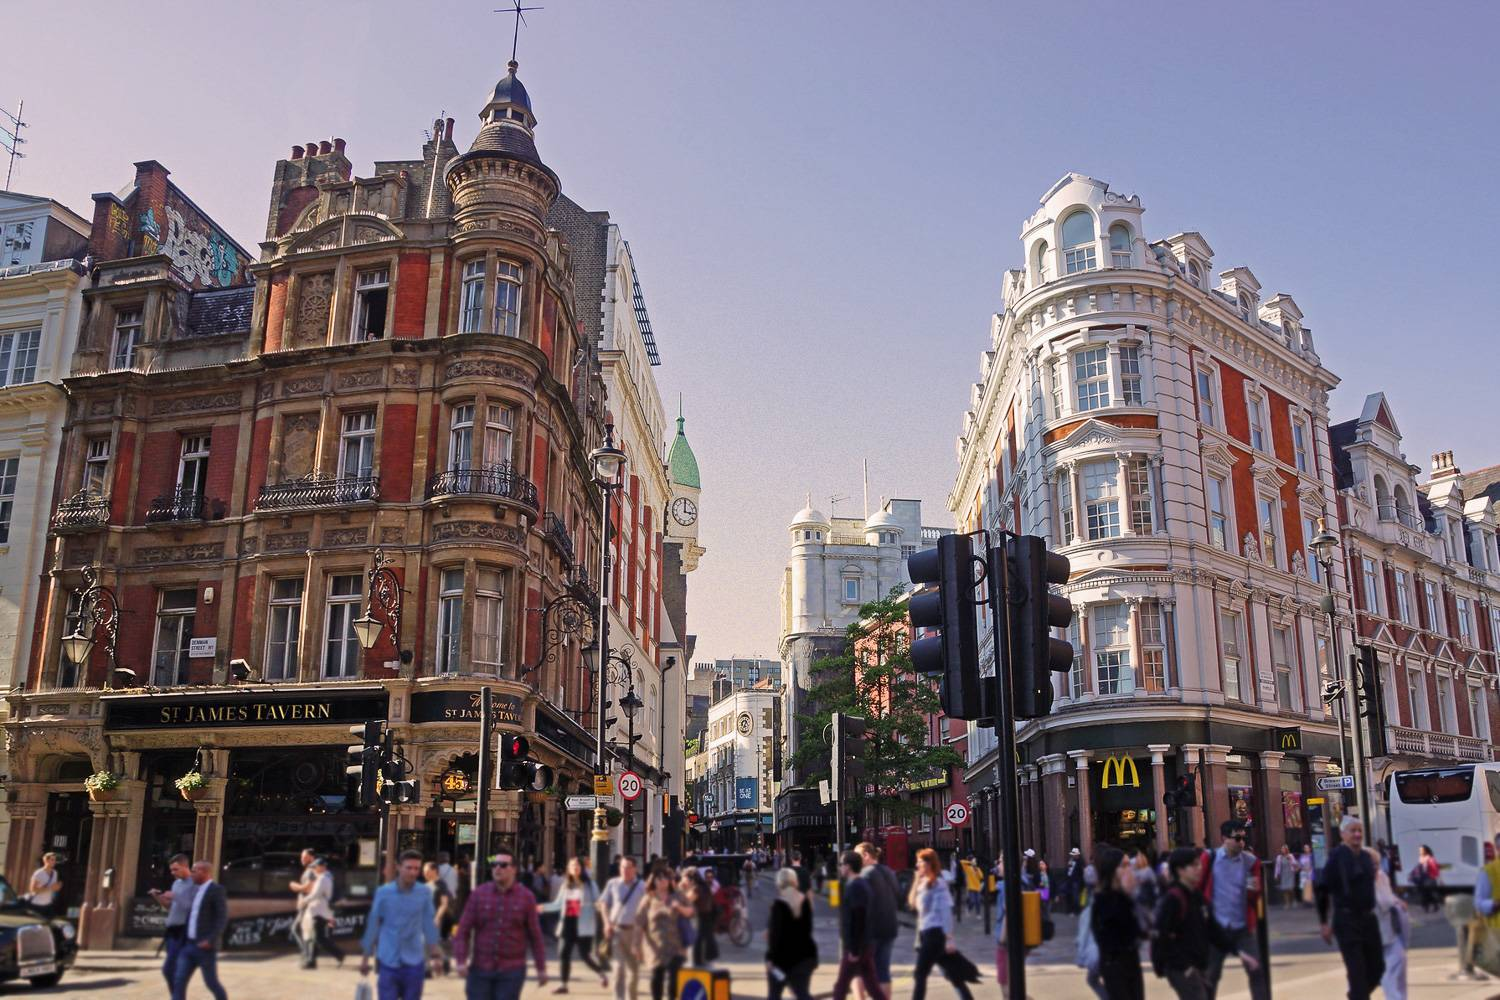 An image of a street corner with unique architecture in Soho, London during the day.